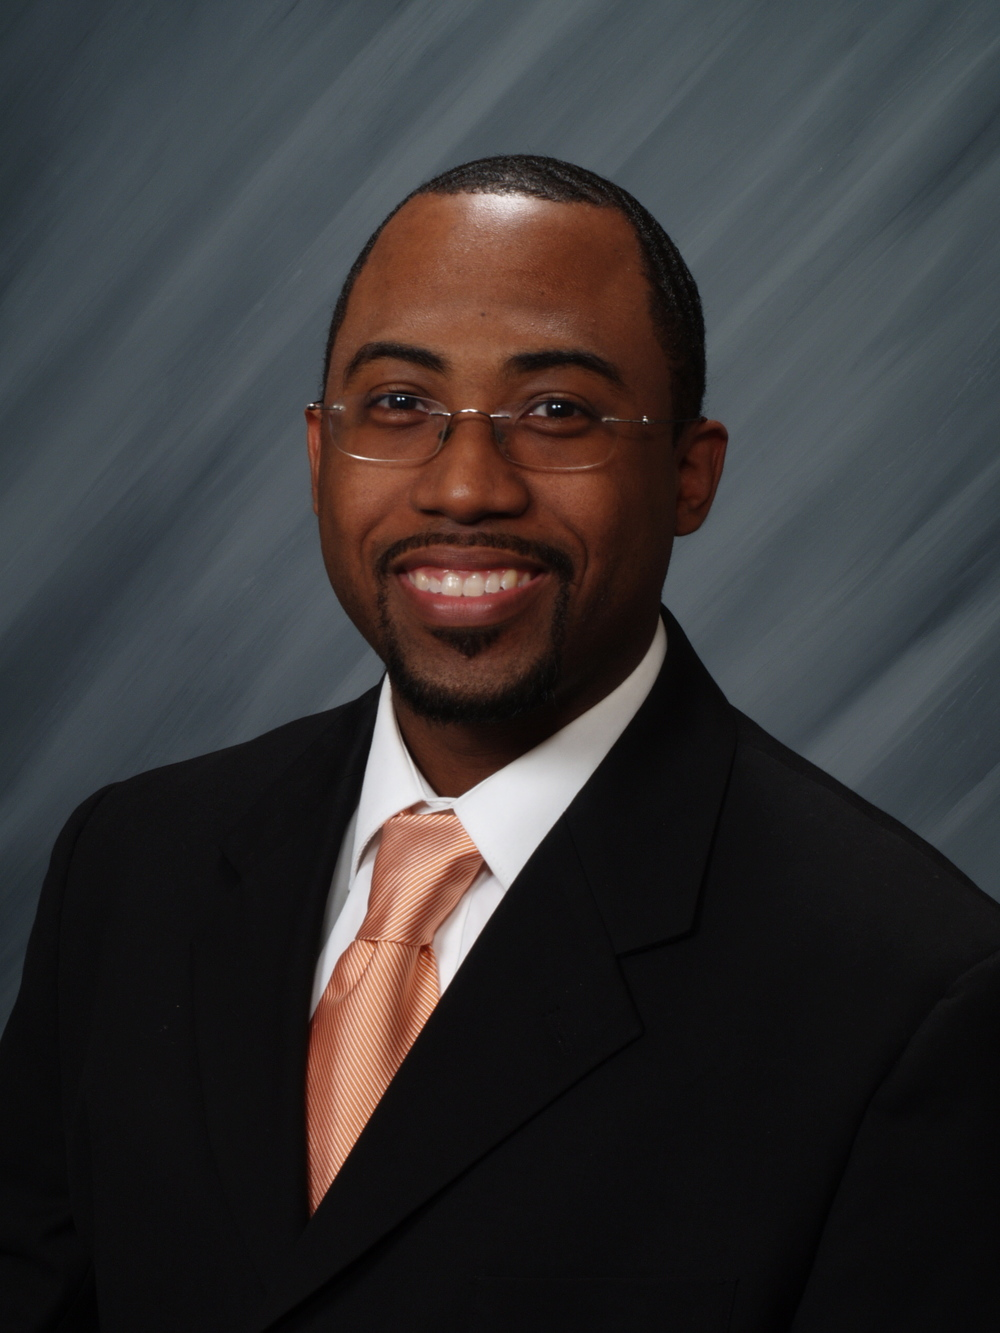 Heber M. Brown III, Pastor, Pleasant Hope Baptist Church/Black Church Security Network, @HeberBrown